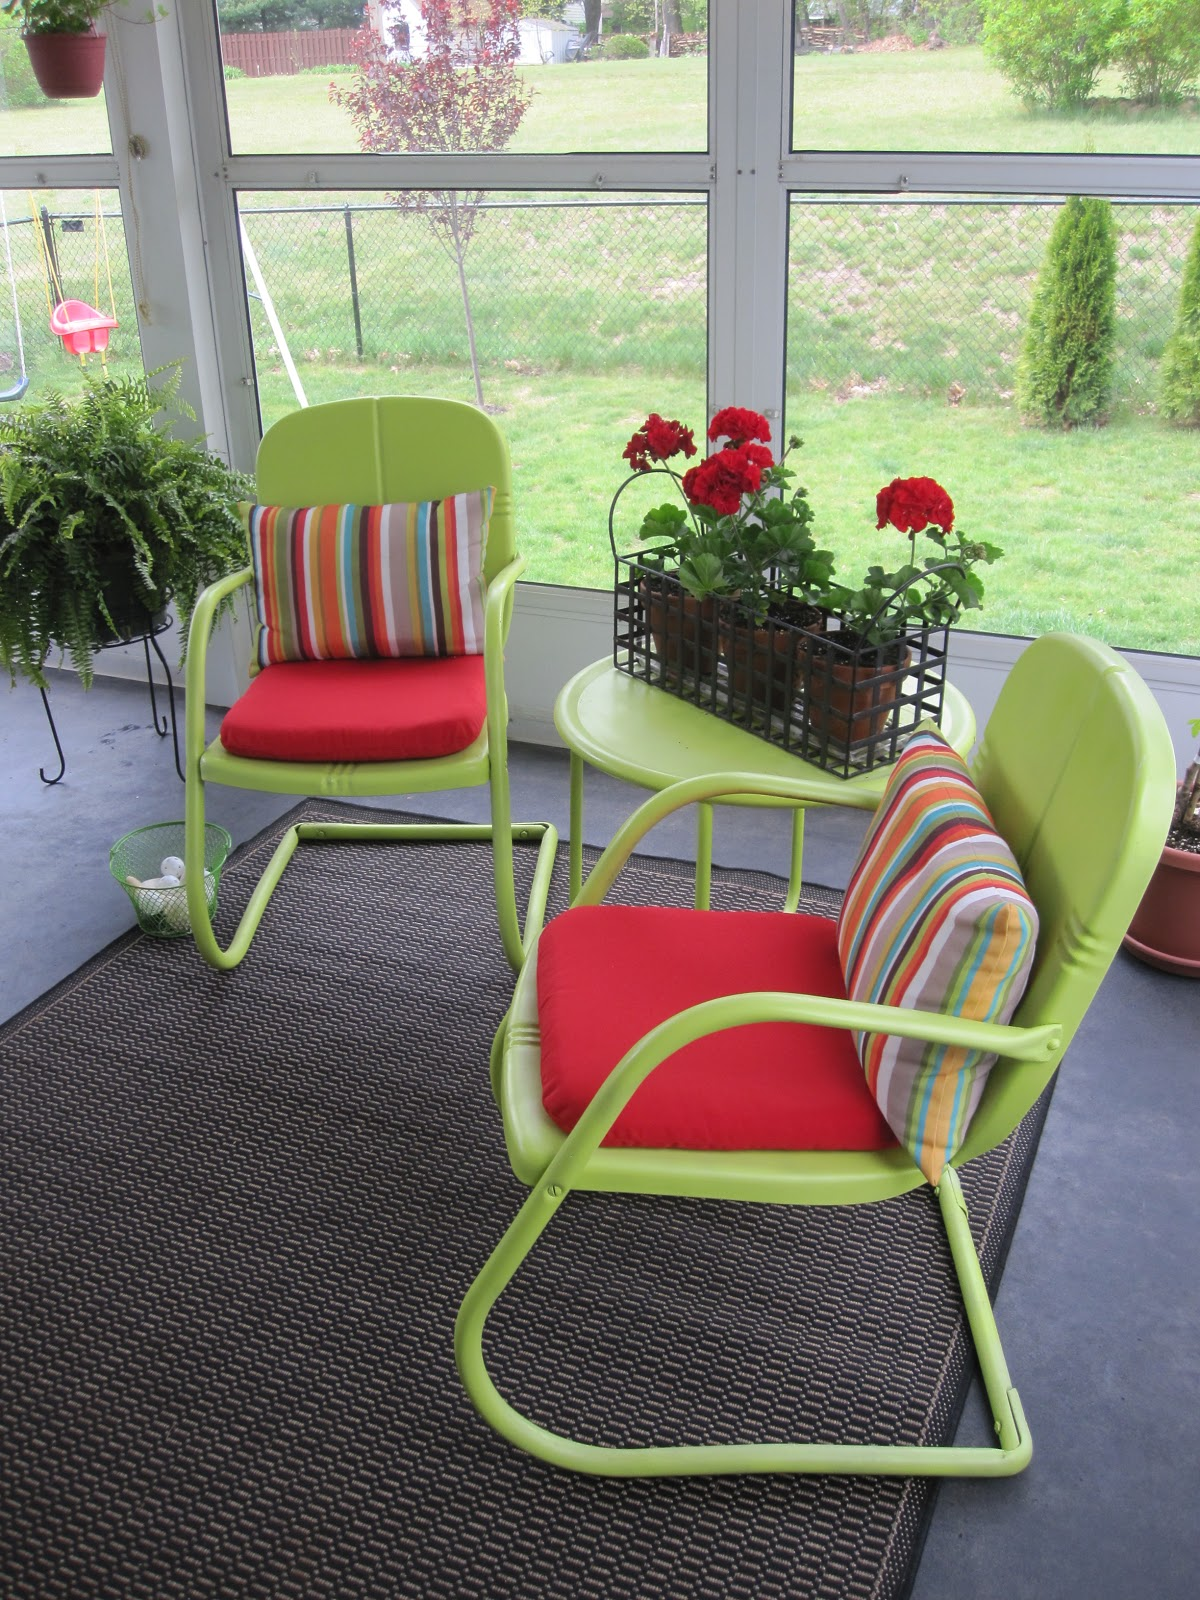 green lawn chairs chair stand test results tdb house tour porch